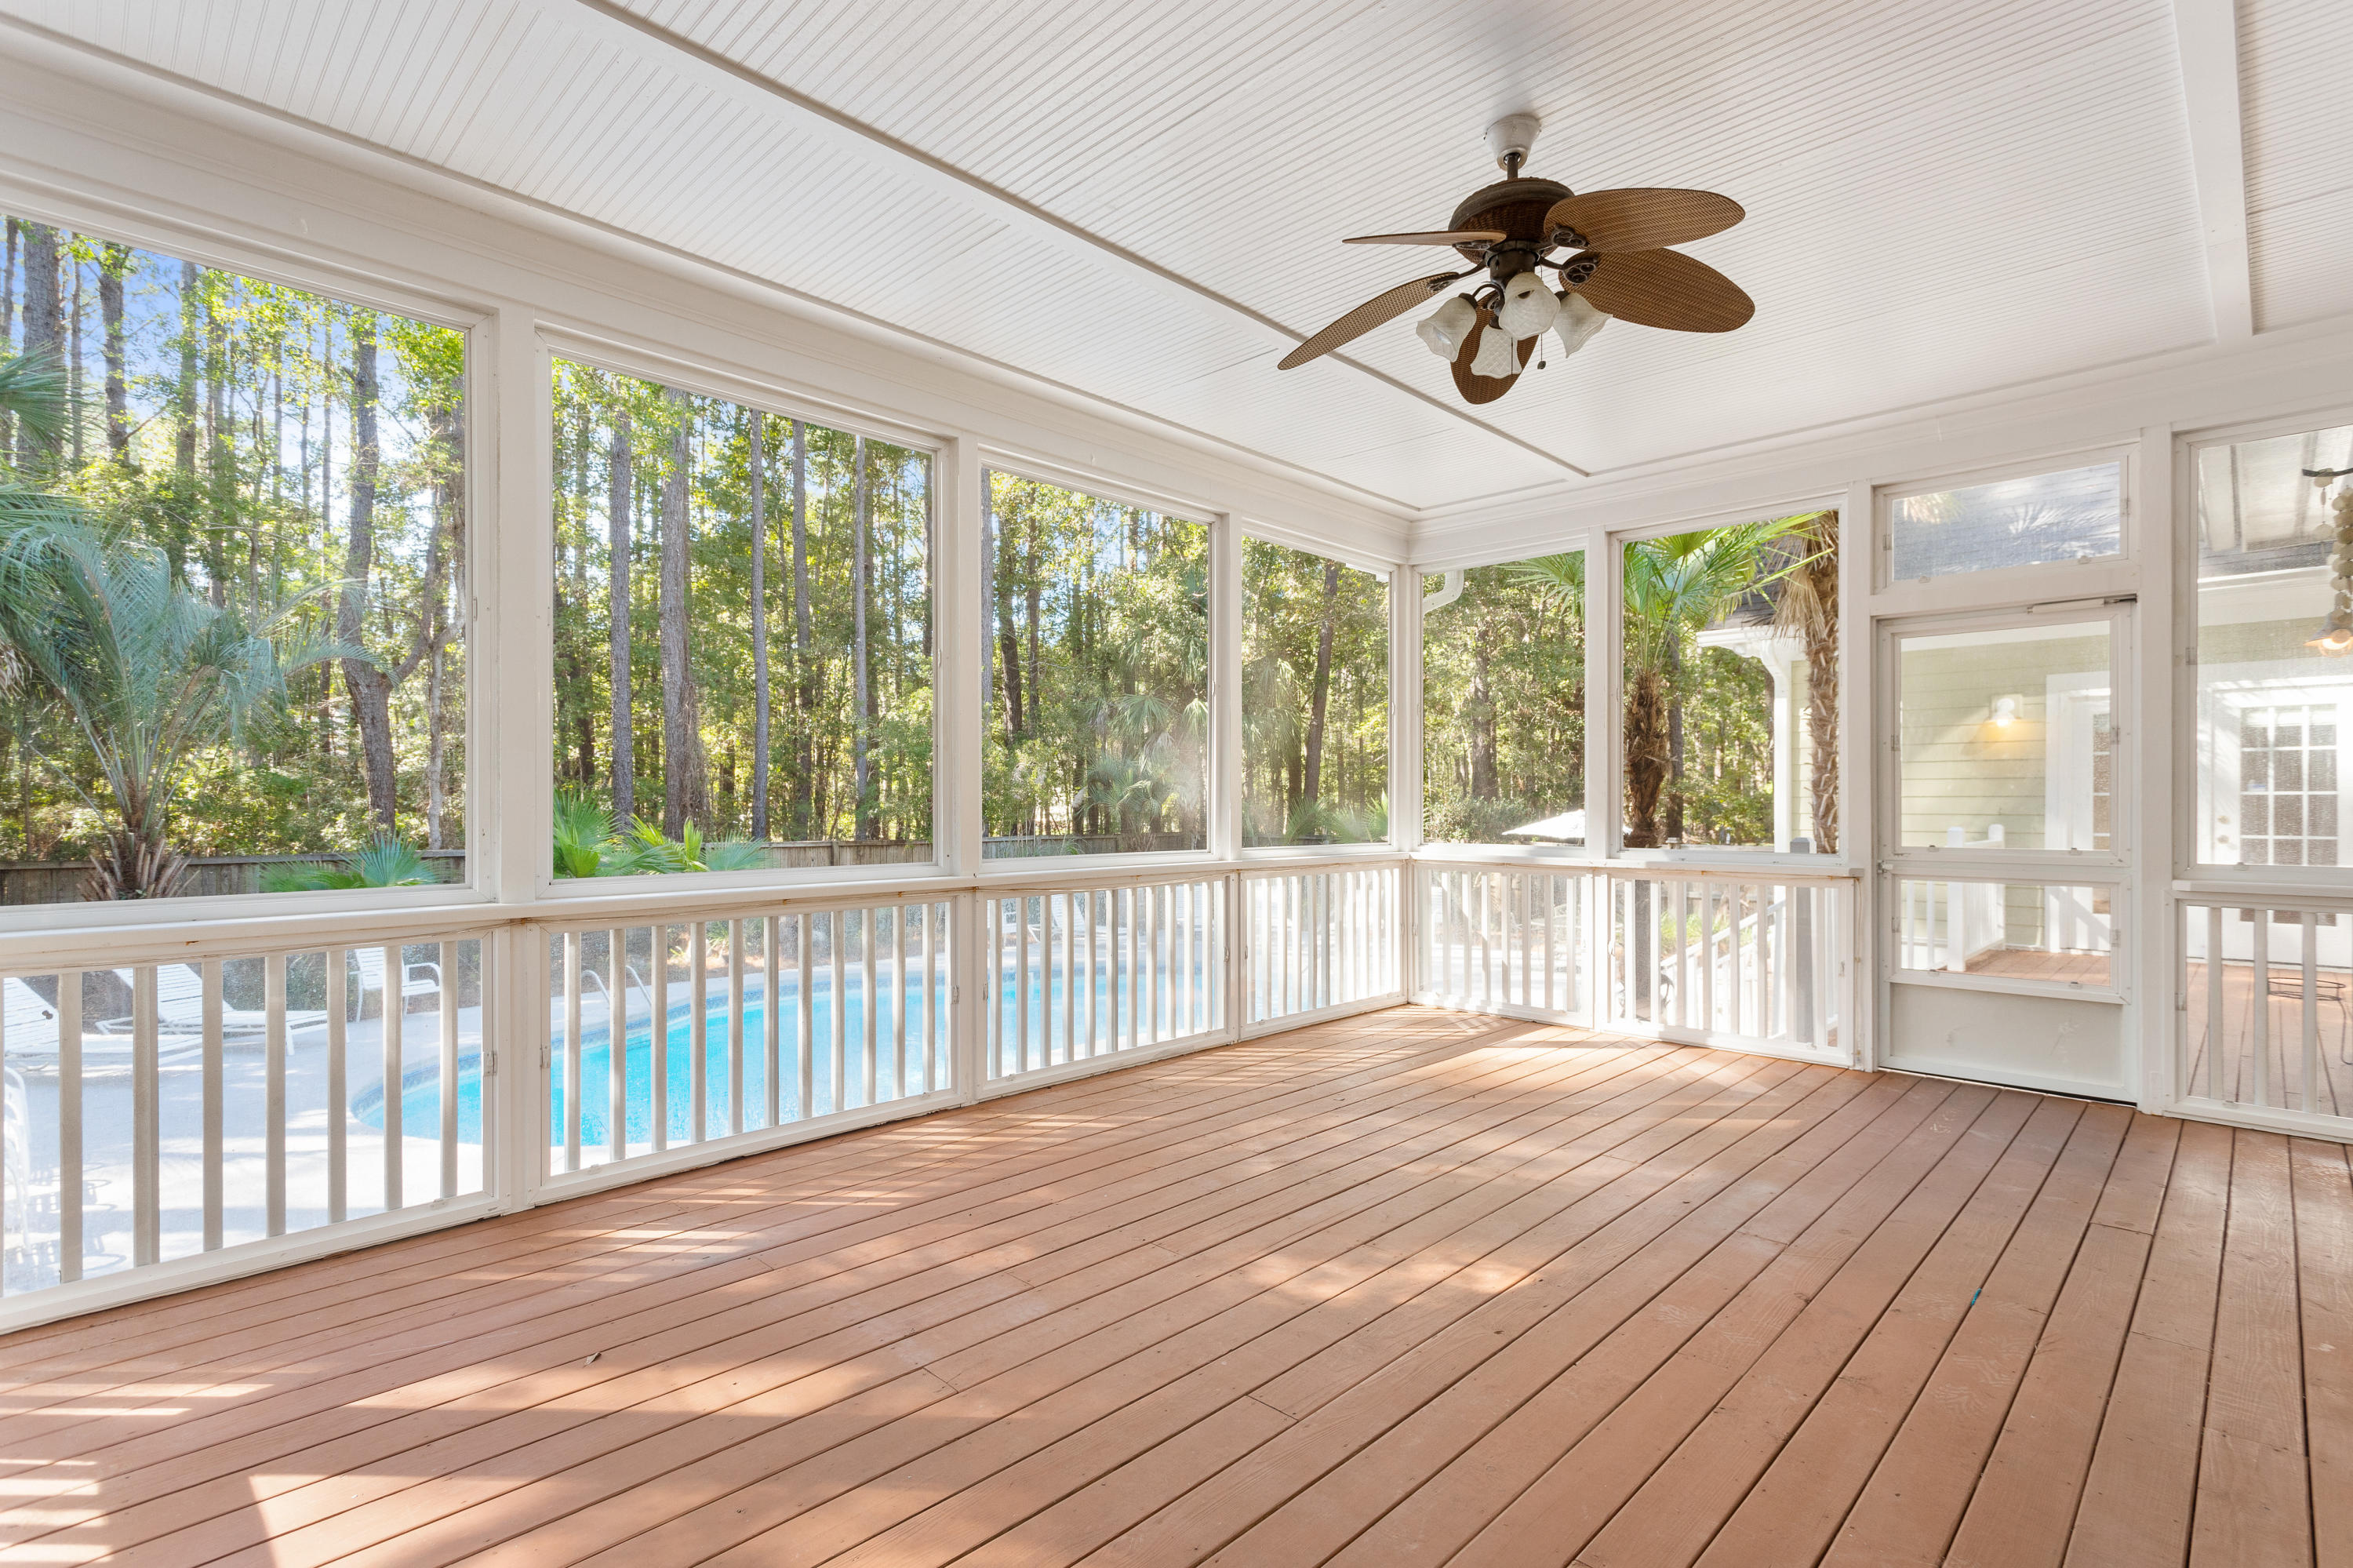 Dunes West Homes For Sale - 1842 Shell Ring, Mount Pleasant, SC - 15